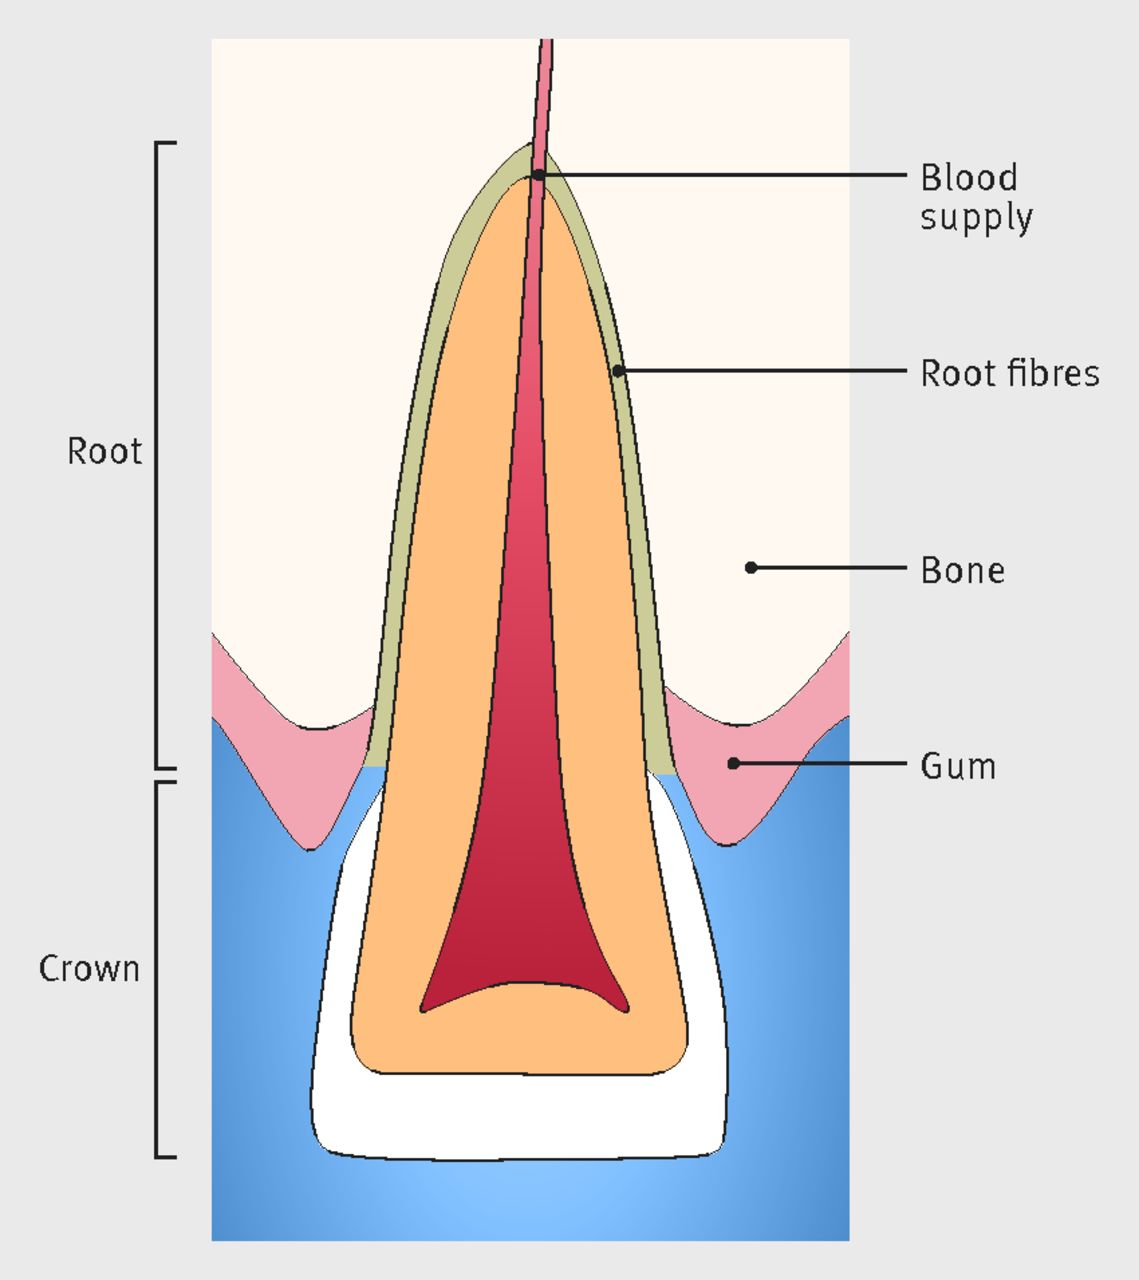 hight resolution of fig 2 anatomy of central incisor upper front tooth